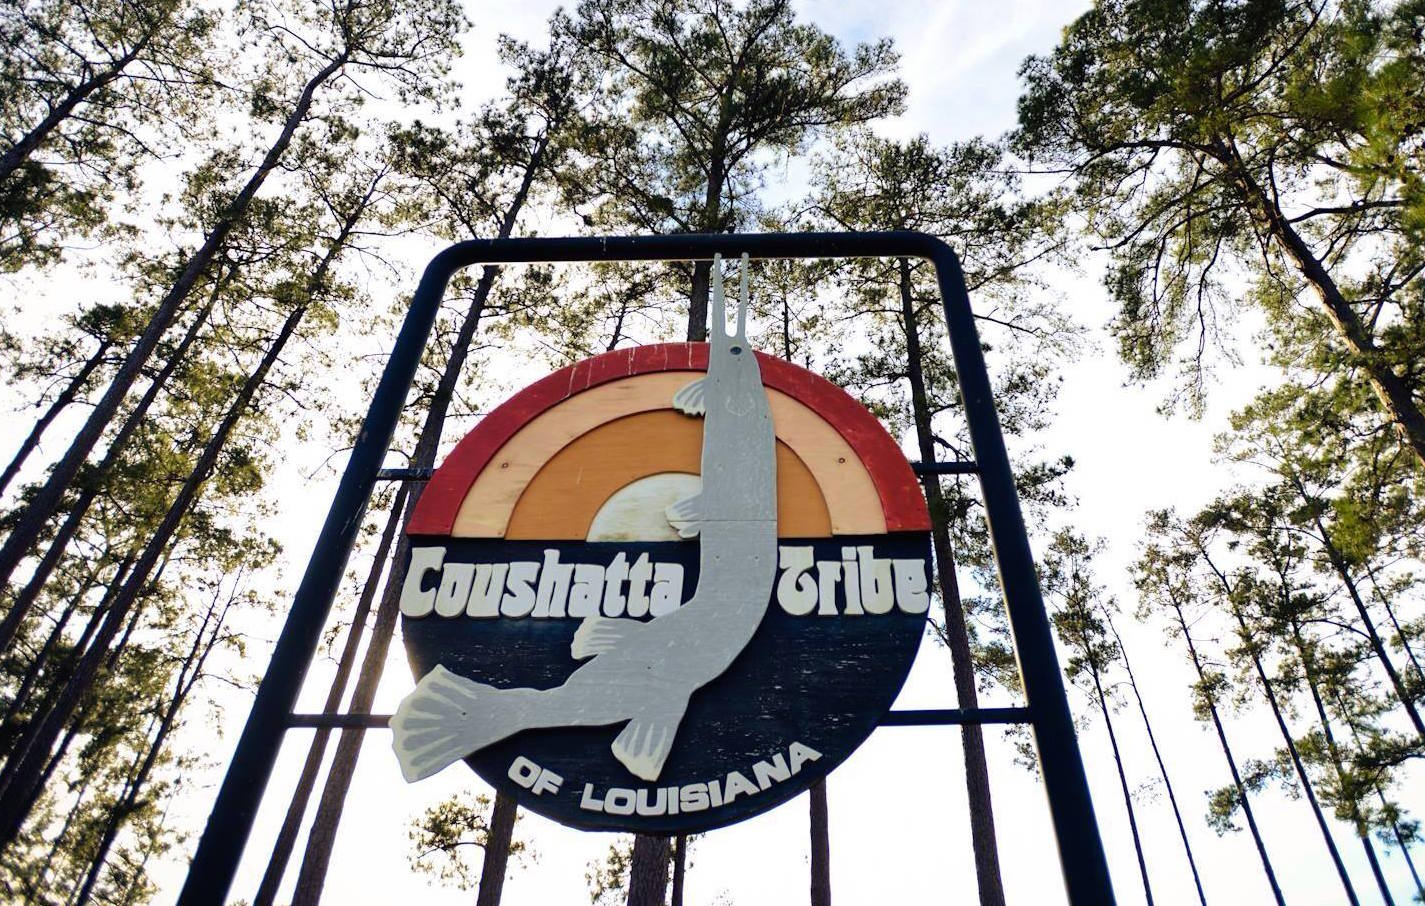 Coushatta Tribe wins ruling in long-running dispute with contractor